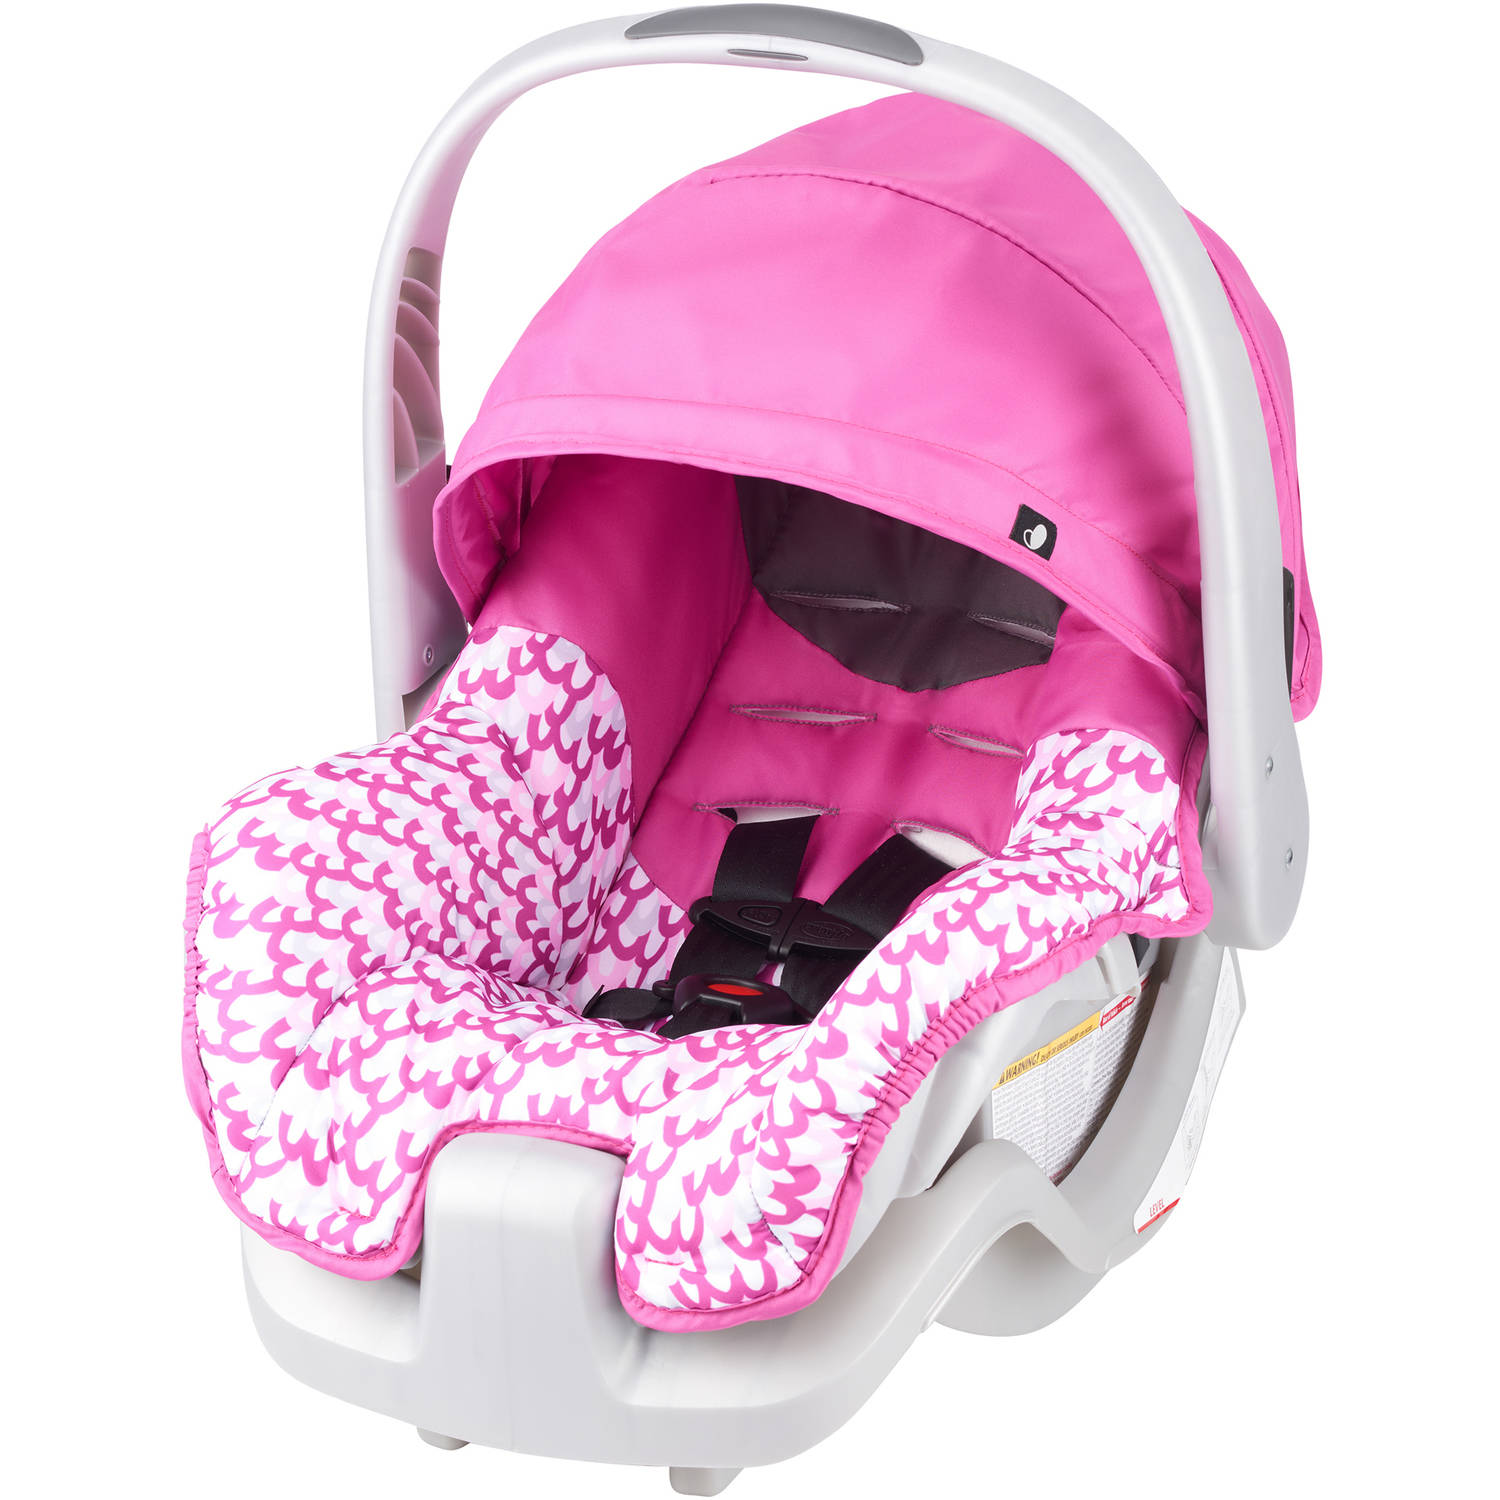 Evenflo Car Seats At Walmart >> Evenflo Nurture Infant Car Seat, Razzle Dazzle - Walmart.com